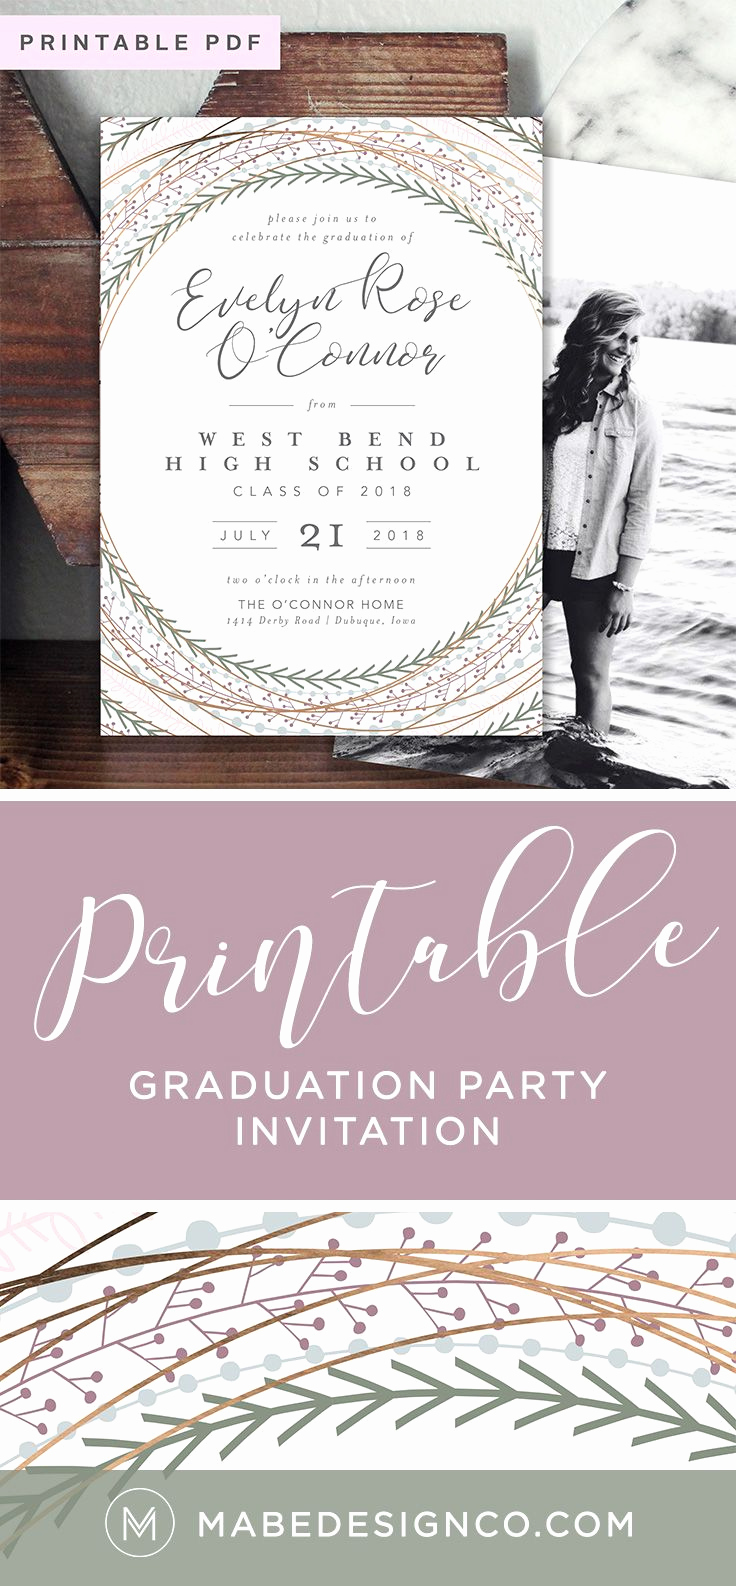 Graduation Invitation Announcement Wording Unique Best 25 Graduation Invitation Wording Ideas On Pinterest